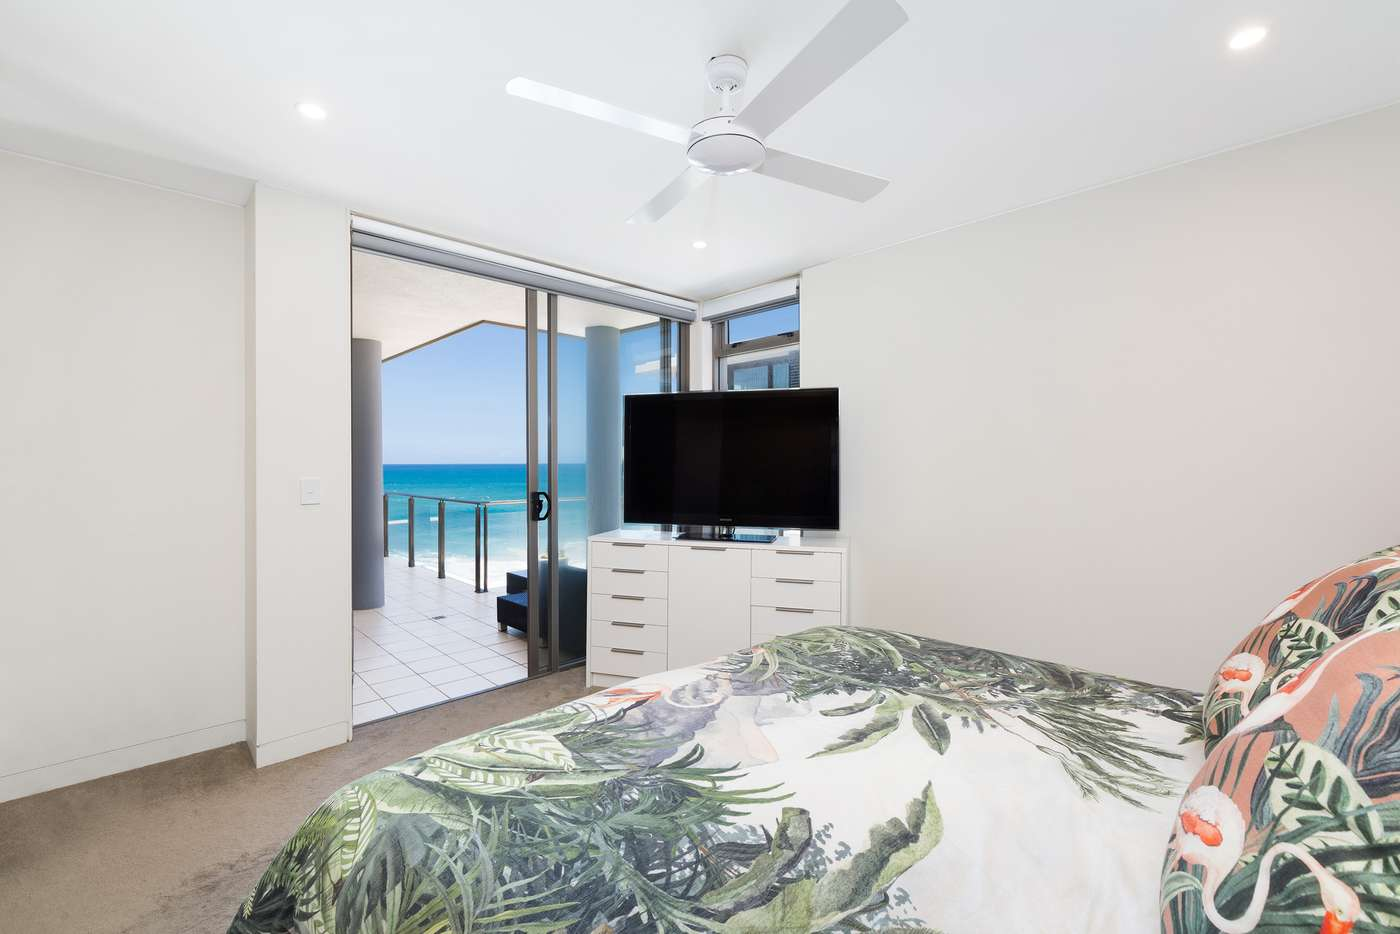 Fifth view of Homely apartment listing, 11/17-19 Prince Street, Cronulla NSW 2230